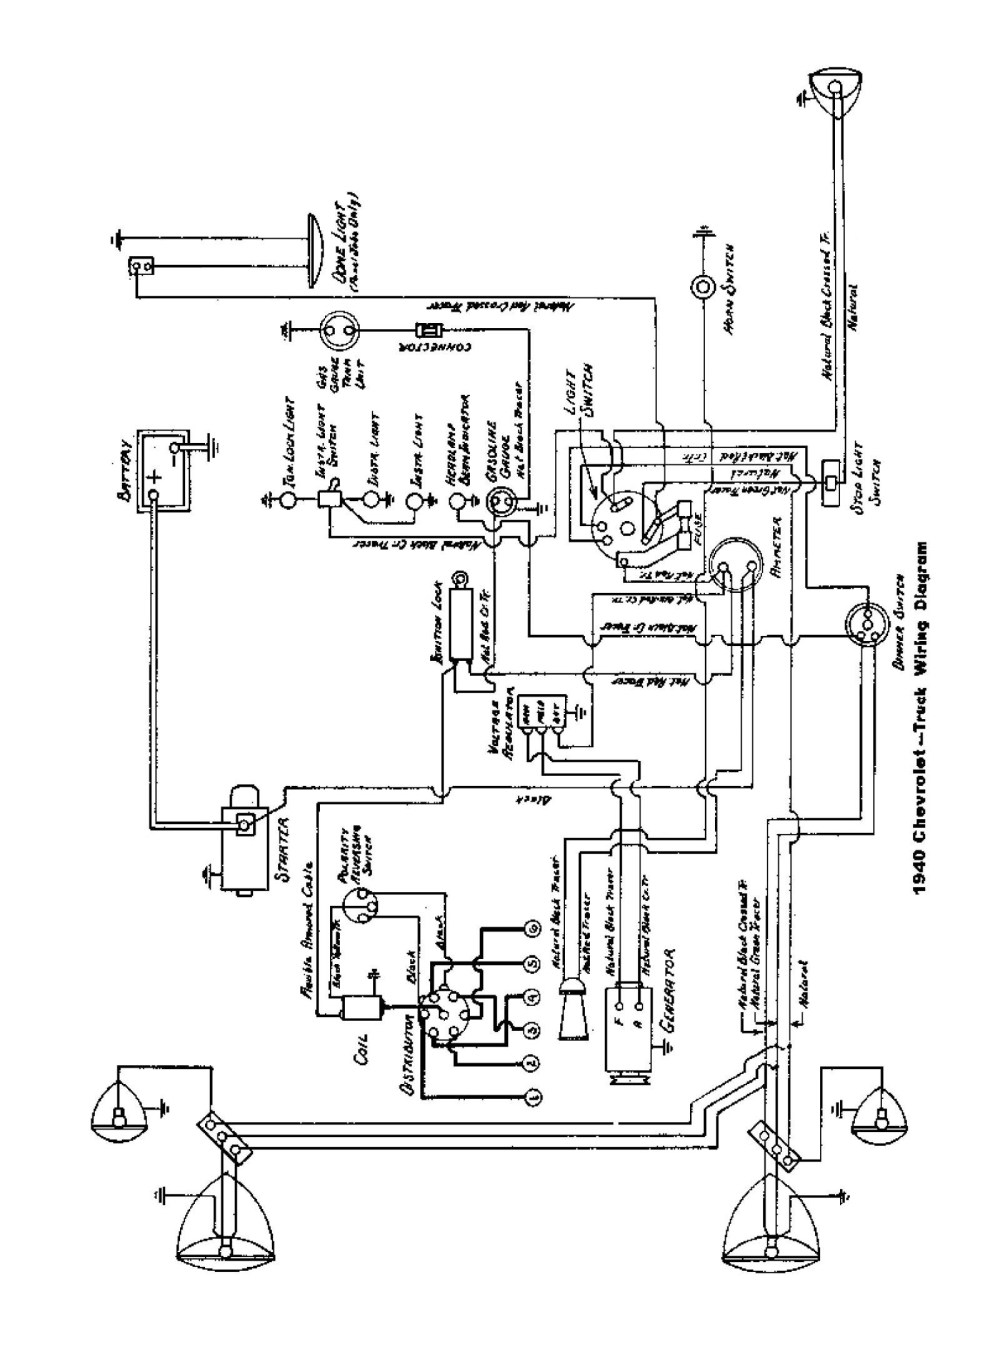 medium resolution of 1955 plymouth wiring diagram wiring diagram post 1956 chrysler wiring diagram wiring diagram schema 1955 chrysler